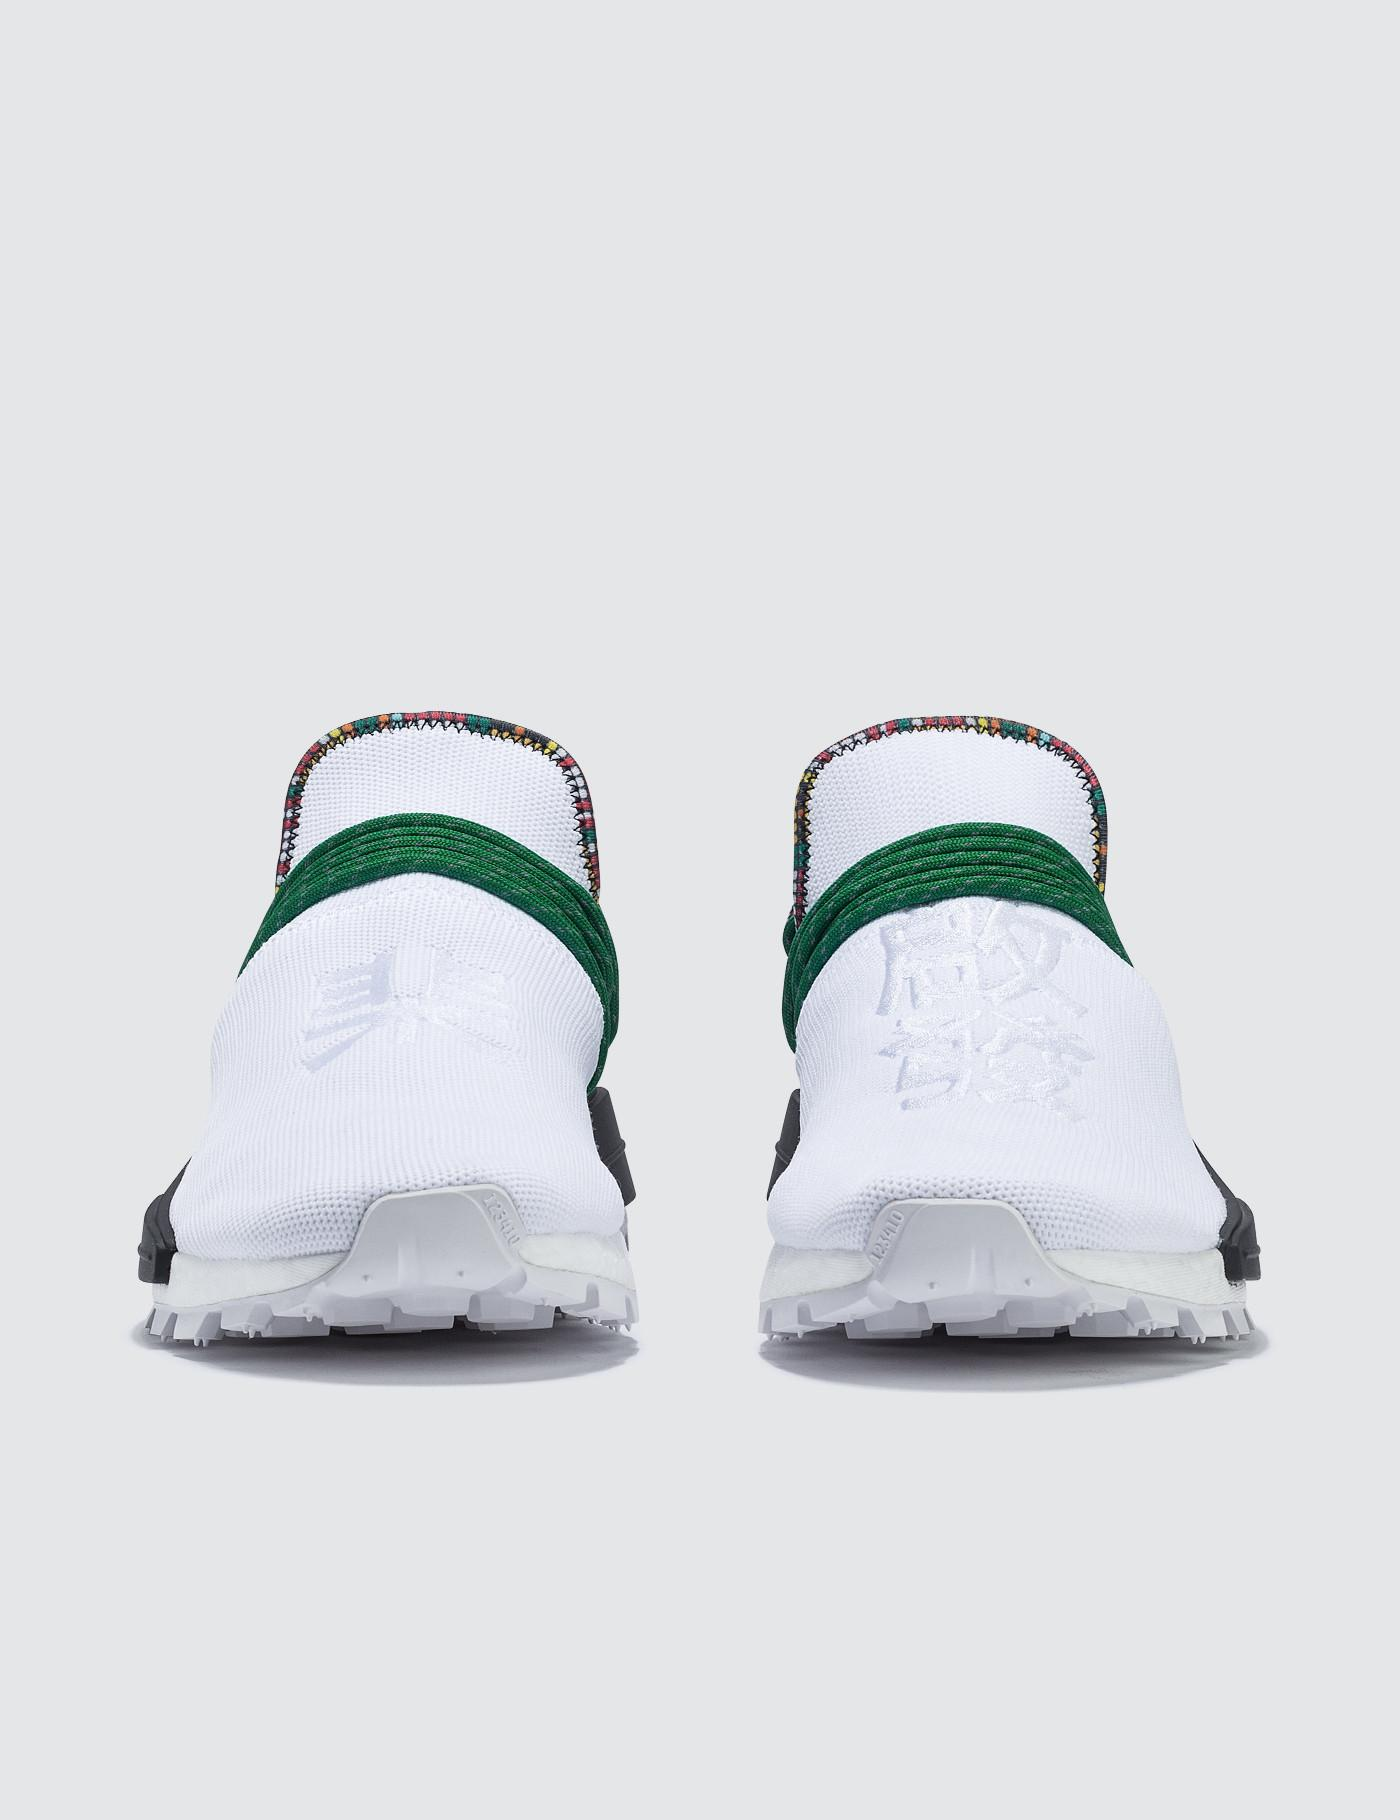 6440cf92b Lyst - adidas Originals Pharrell Williams X Adidas Pw Solar Hu Nmd ...